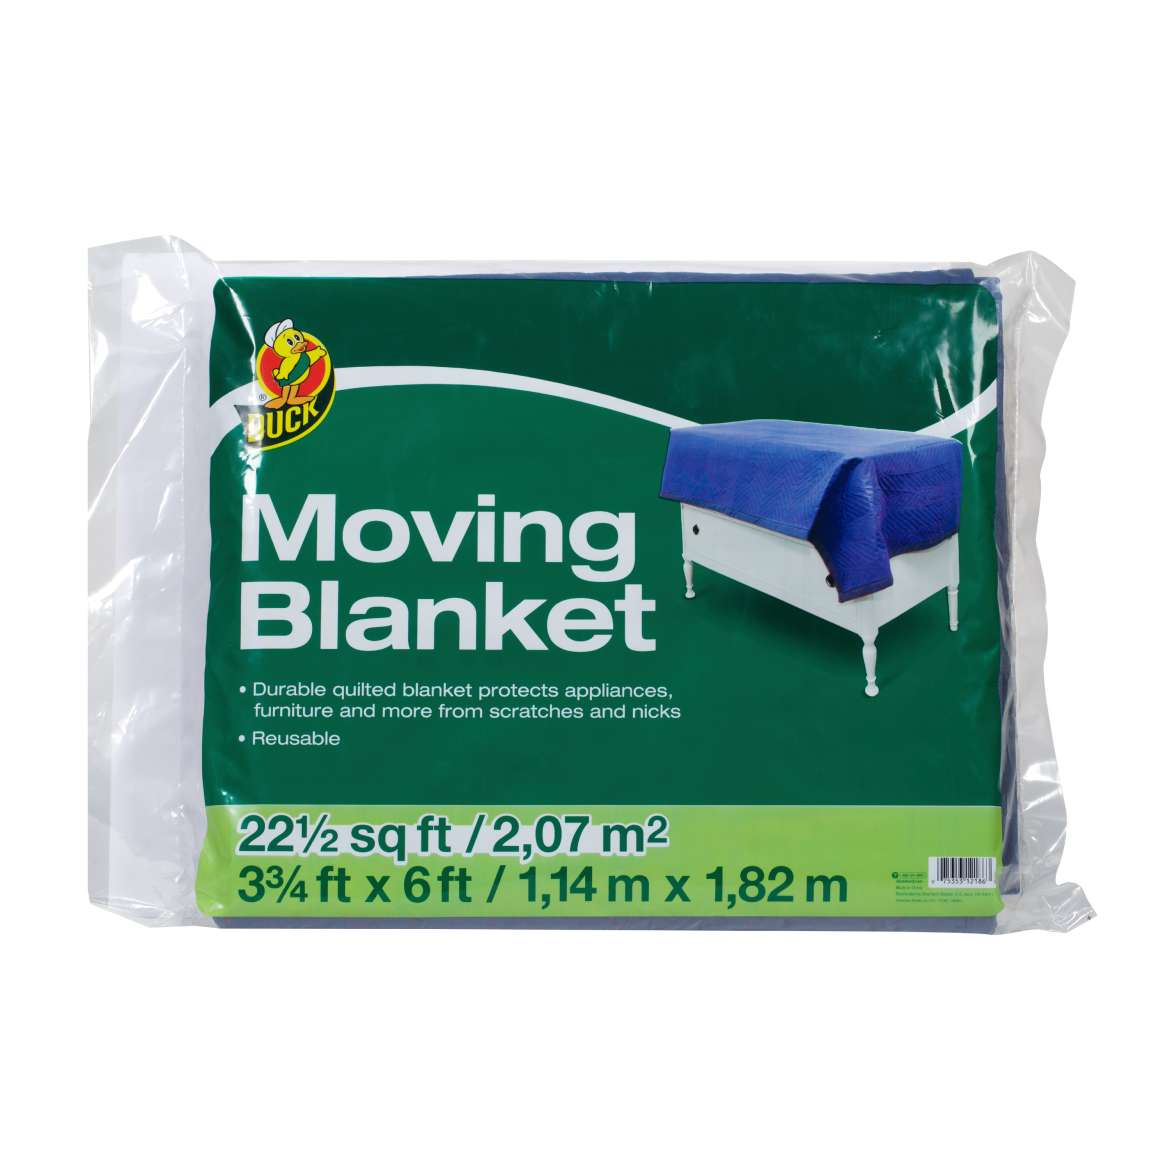 Moving Blanket Image